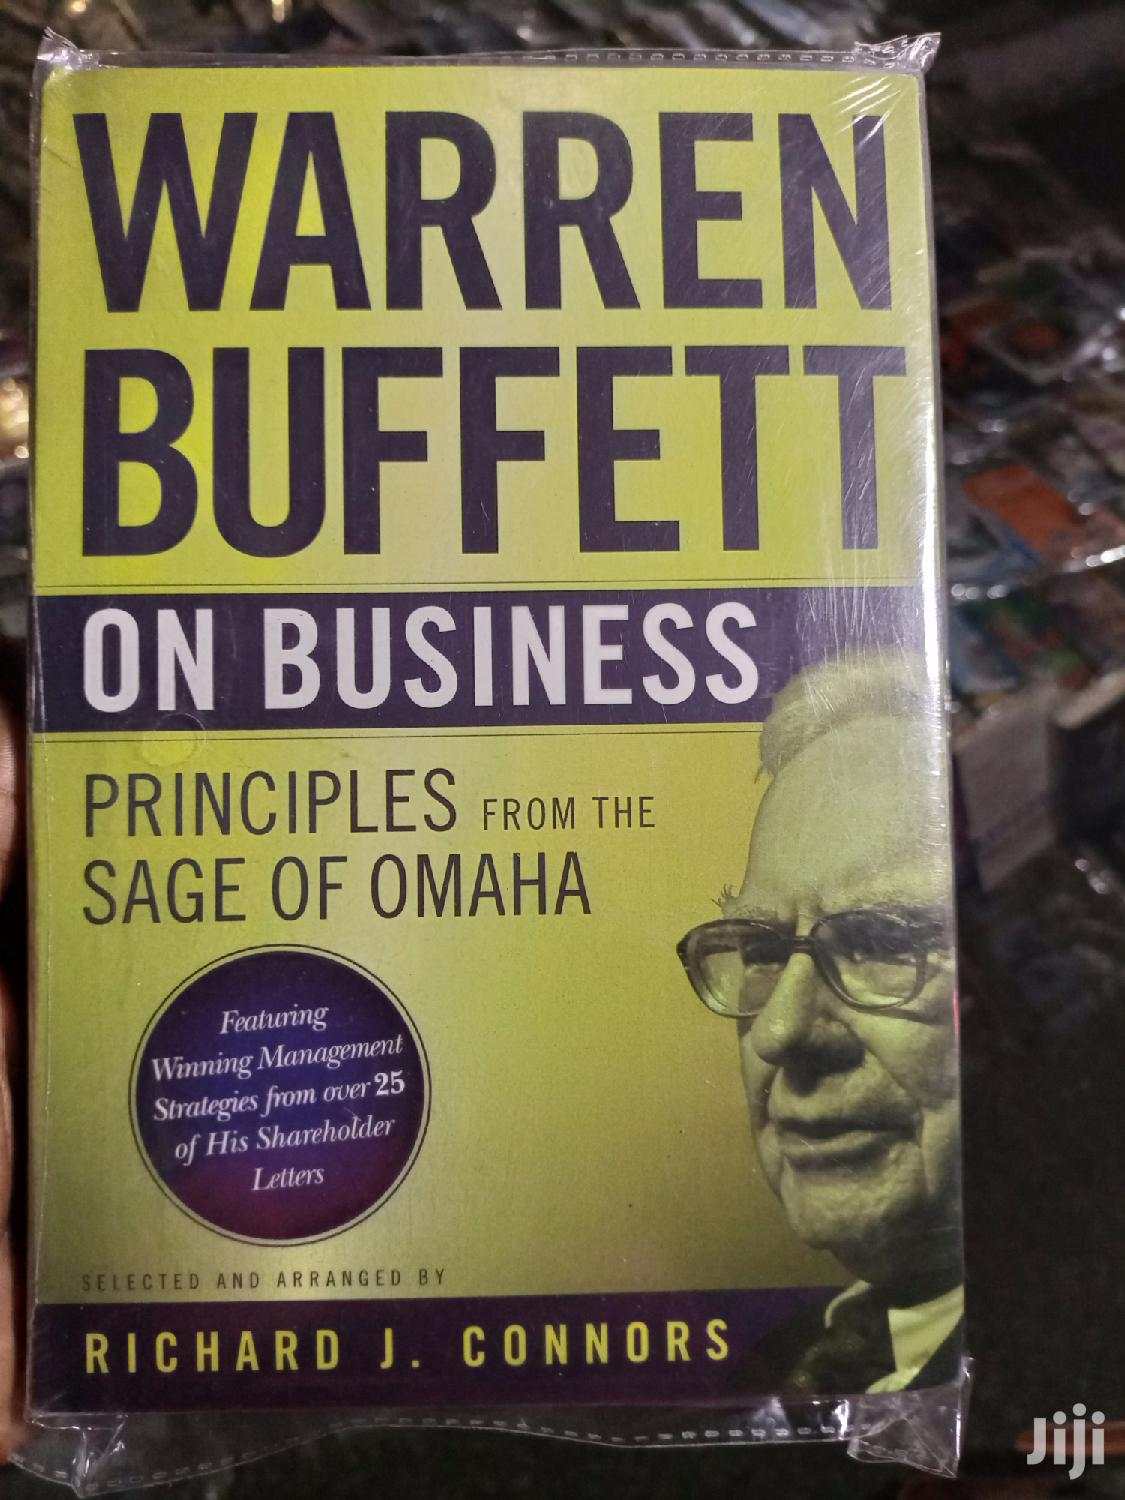 Warren Buffet On Business (Principles From The Sage Of Omaha)